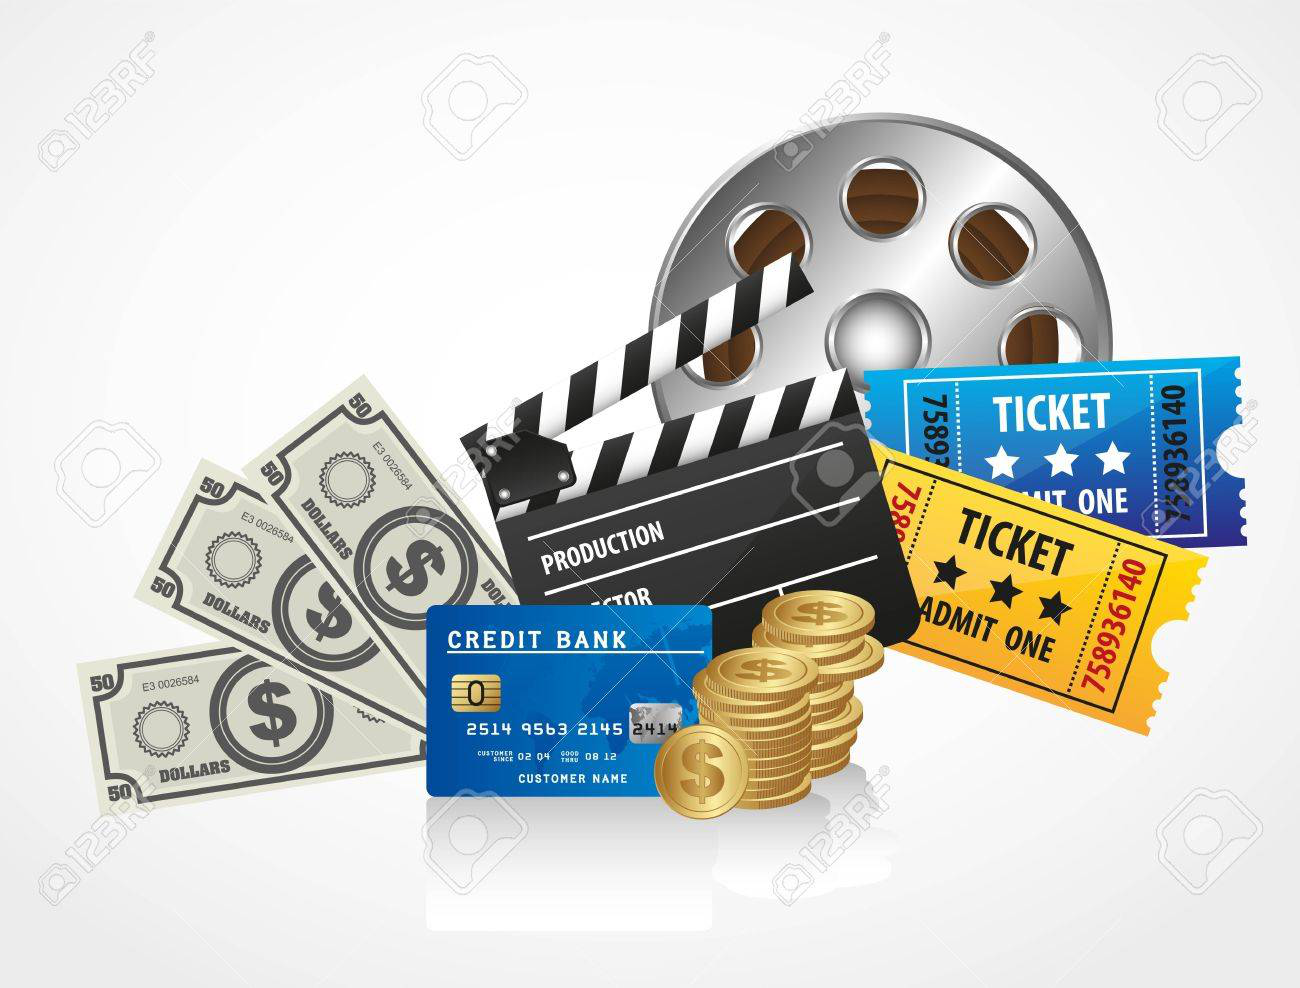 Hollywood Most Profitable Stories  –image